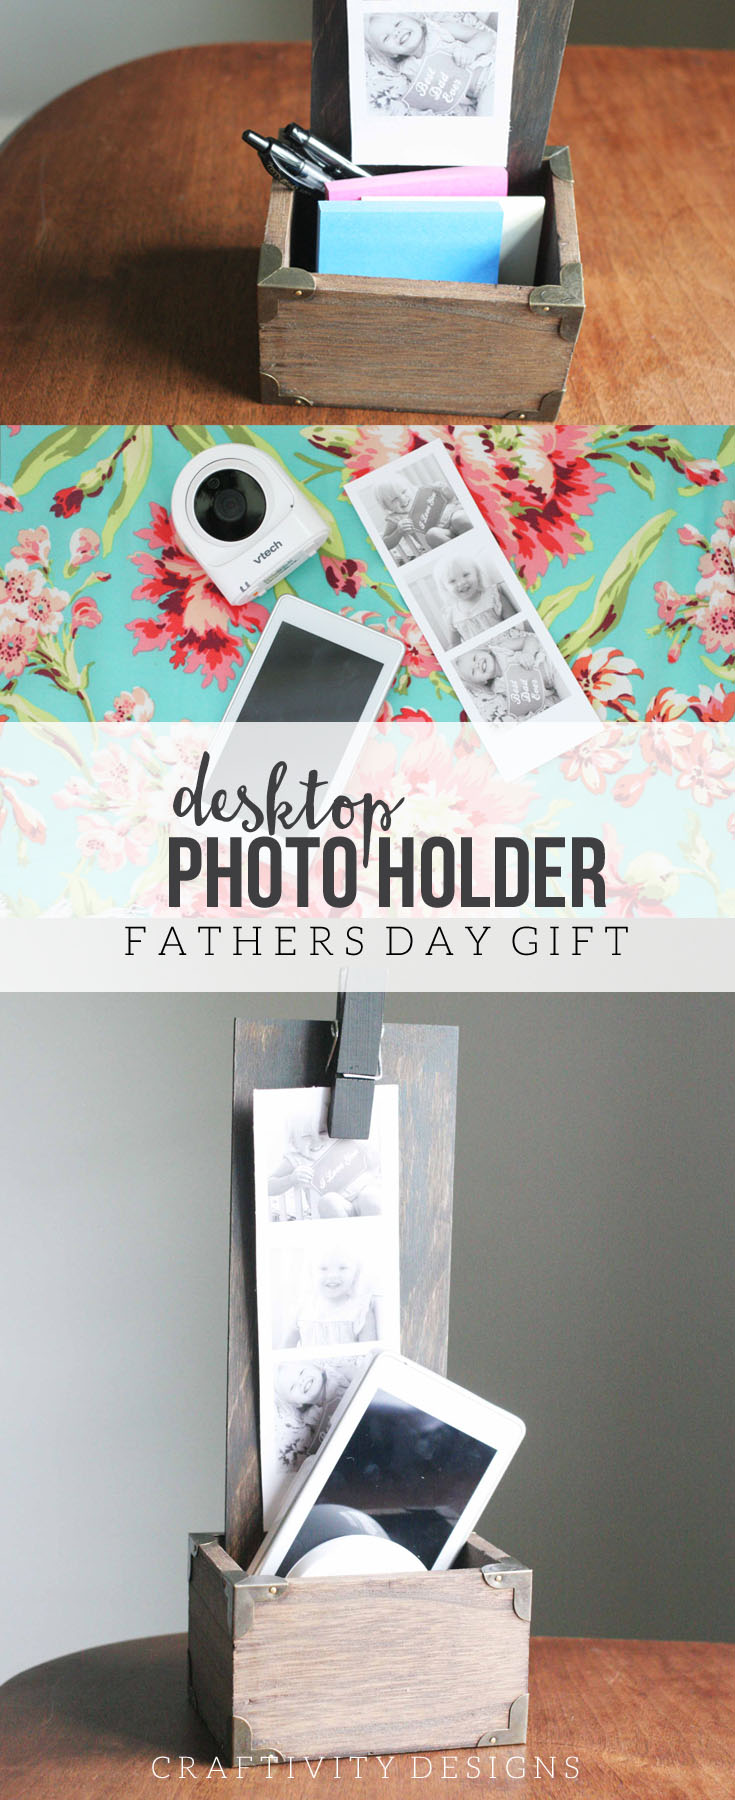 DIY Desktop Photo Holder, Handmade Father's Day Gift, DIY Desk Organizer